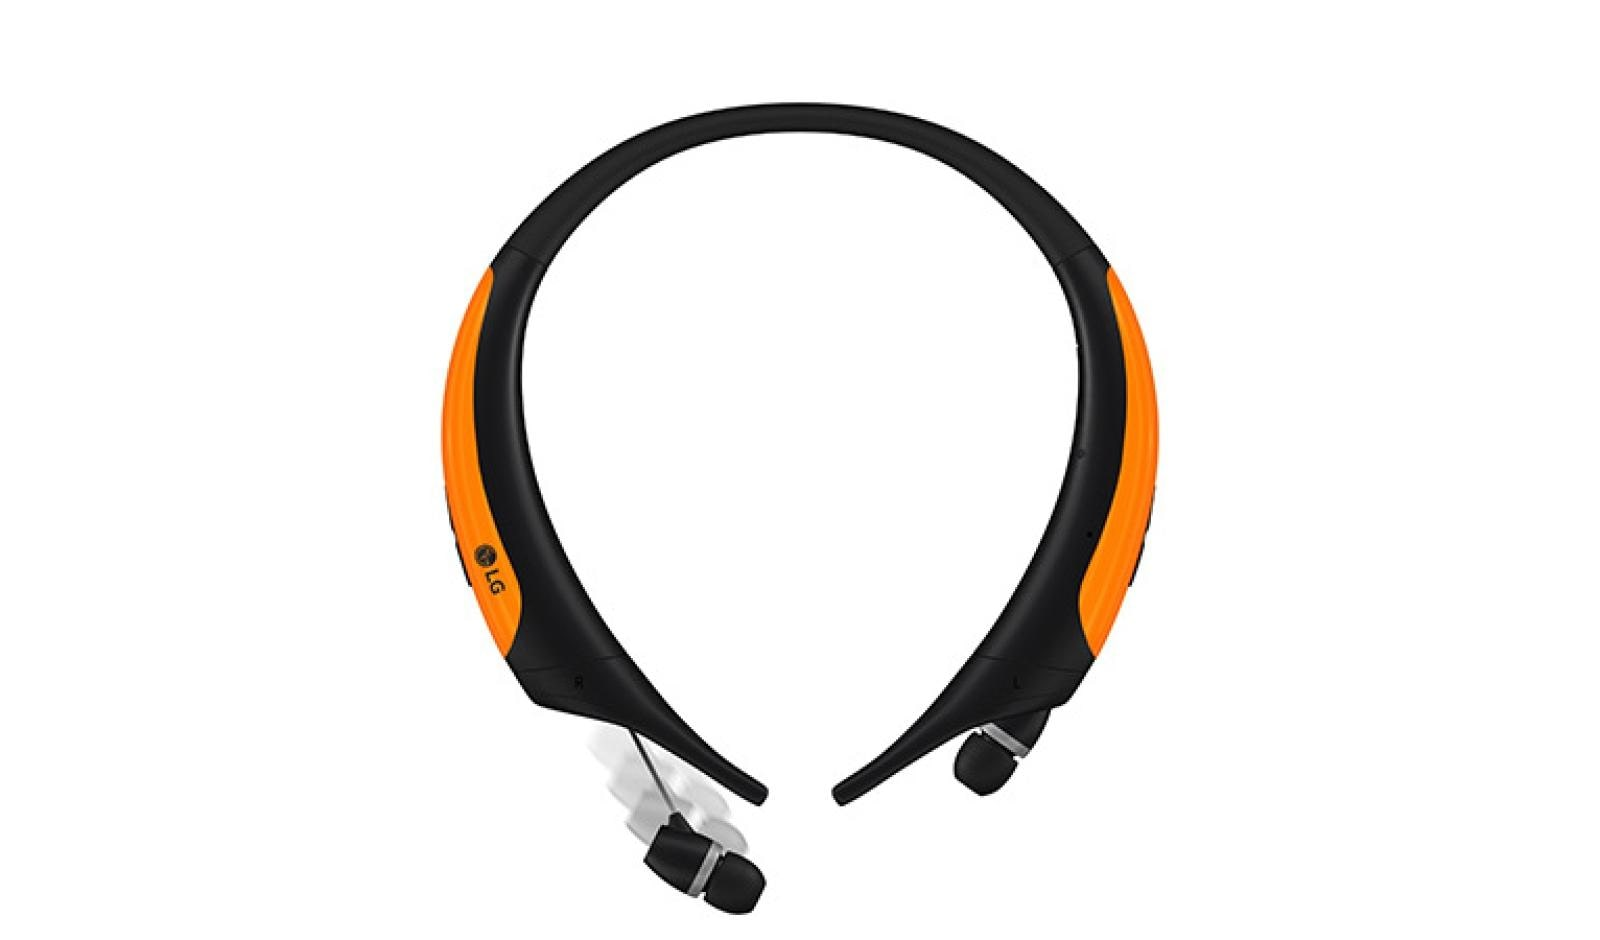 Lg Hbs 850 In Orange Tone Active Drive Your Passion Usa Headset 730